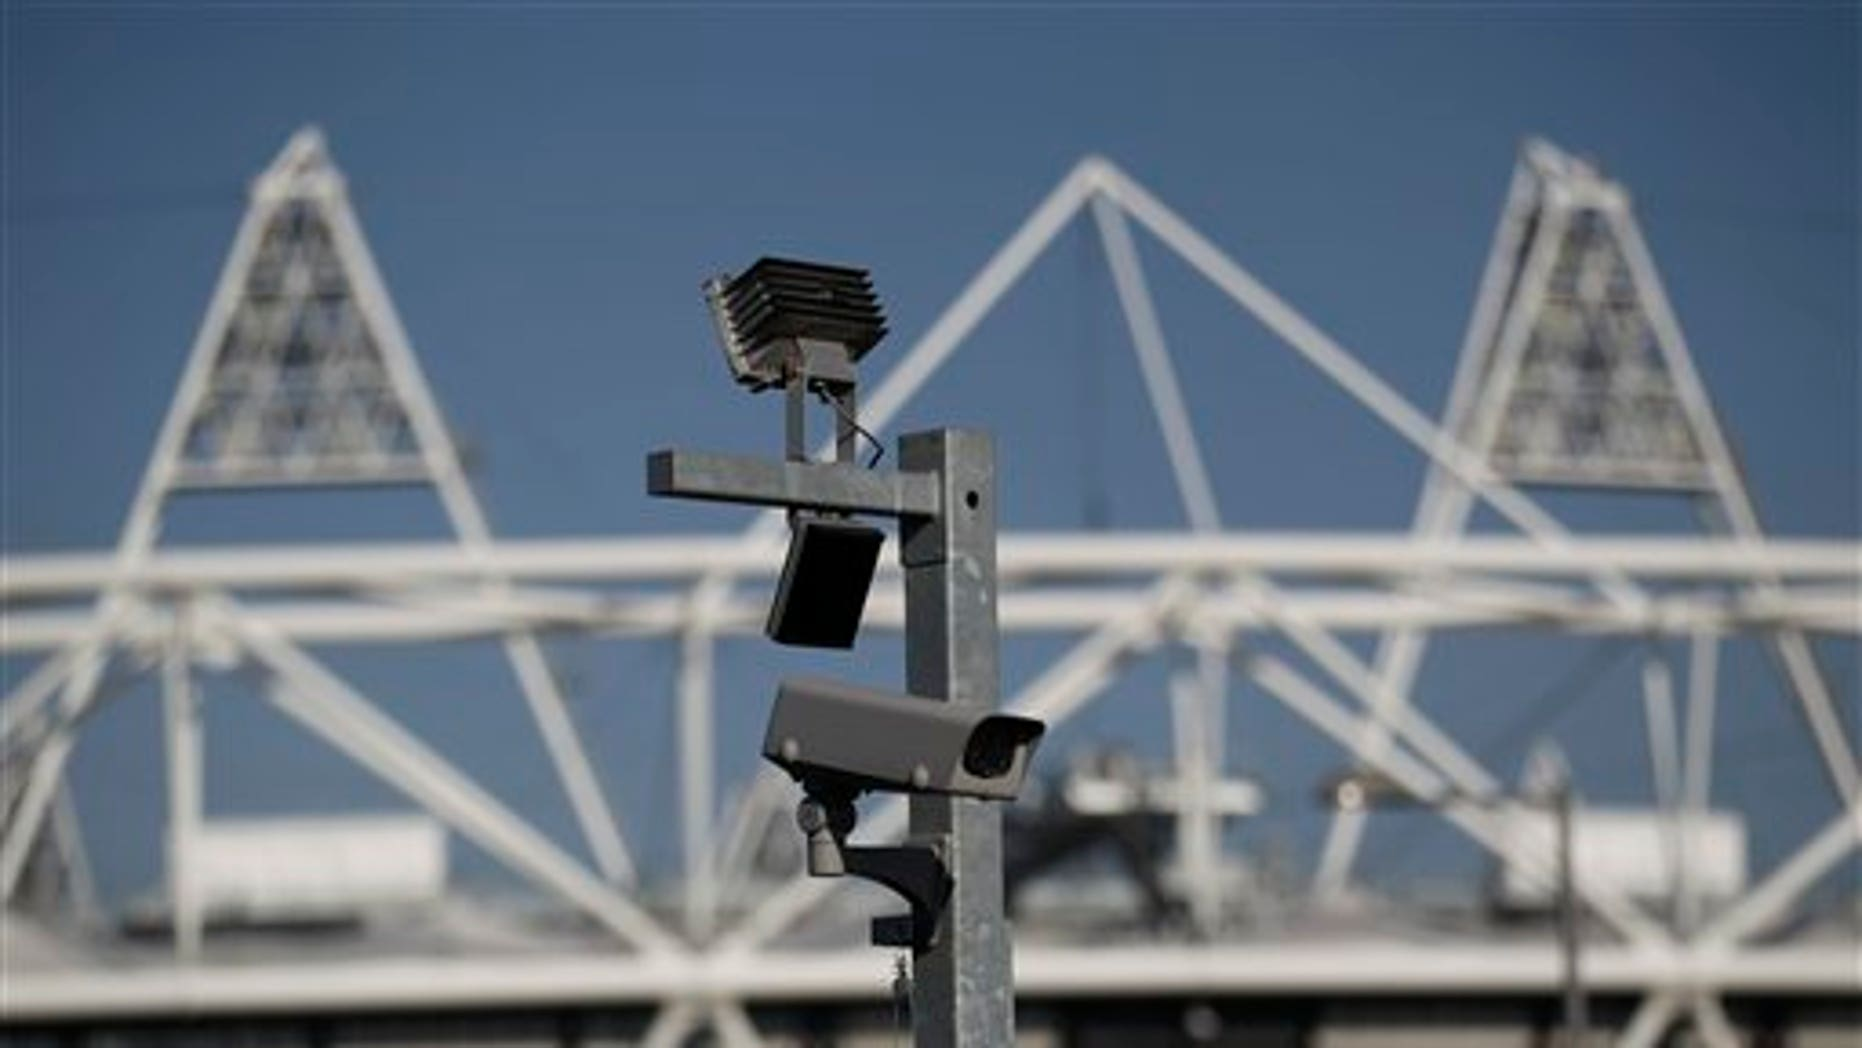 March 28, 2012: A security cctv camera is seen by the Olympic Stadium at the Olympic Park in London.